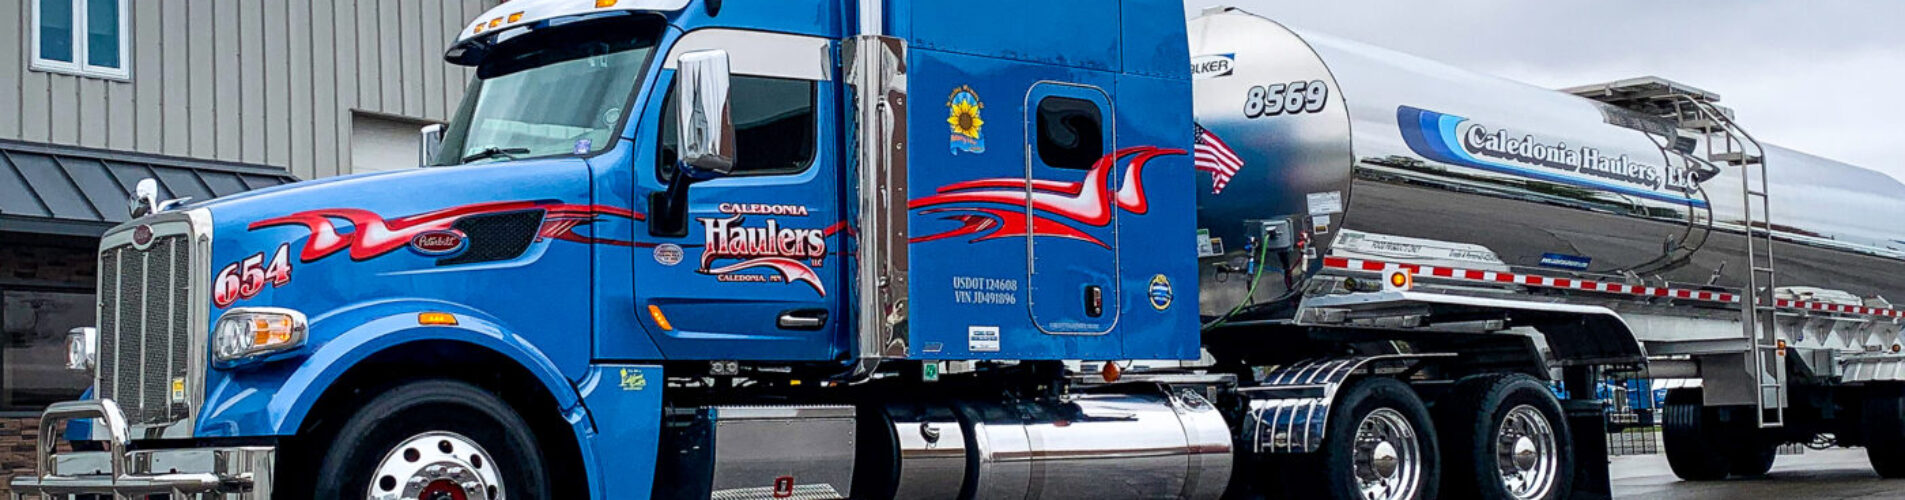 Caledonia Haulers Driver Transporting Food Products